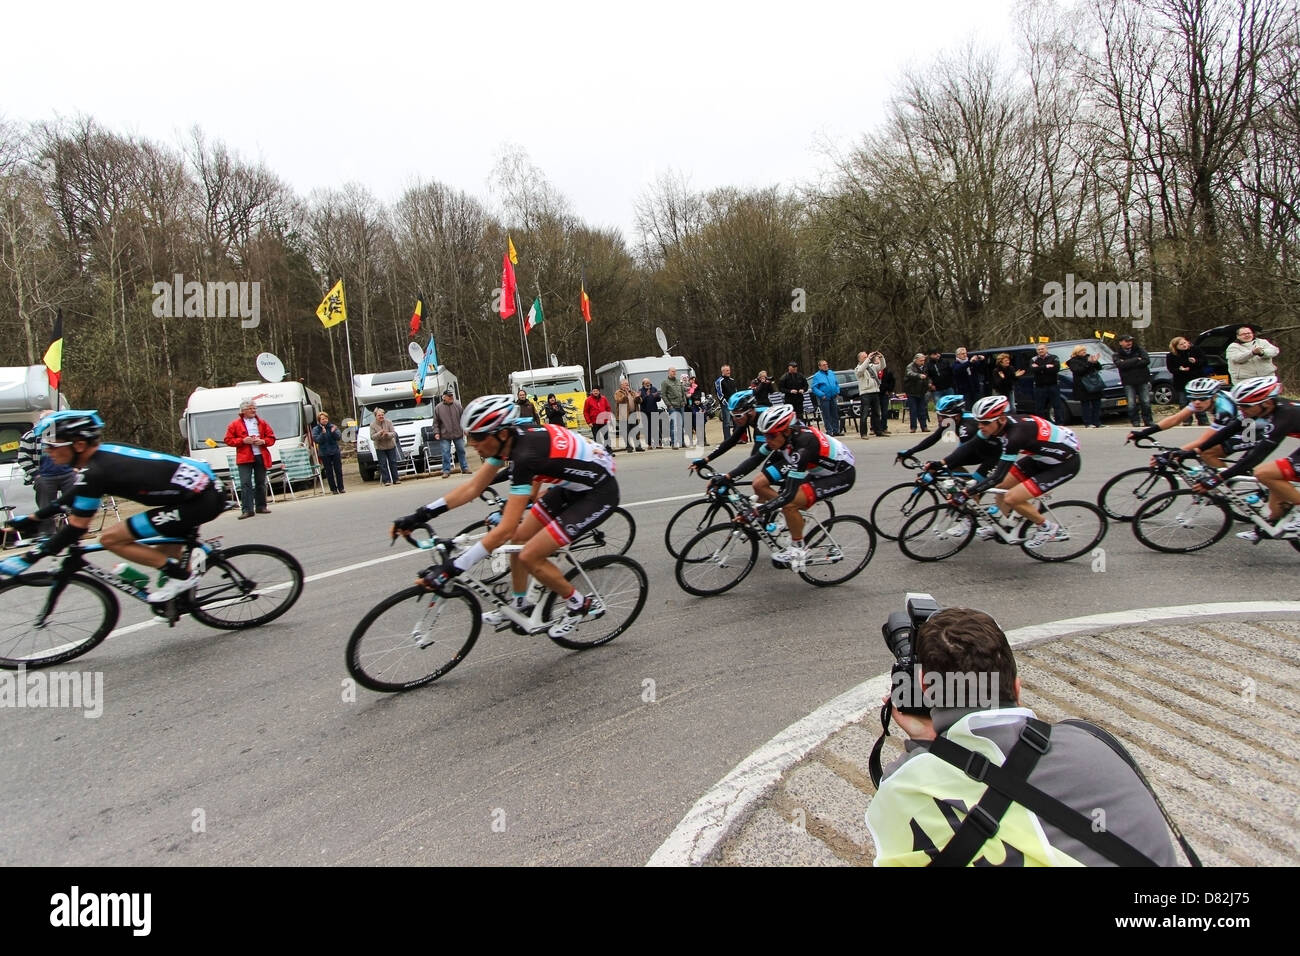 Professional sport photographers at work on a cycling race - Stock Image